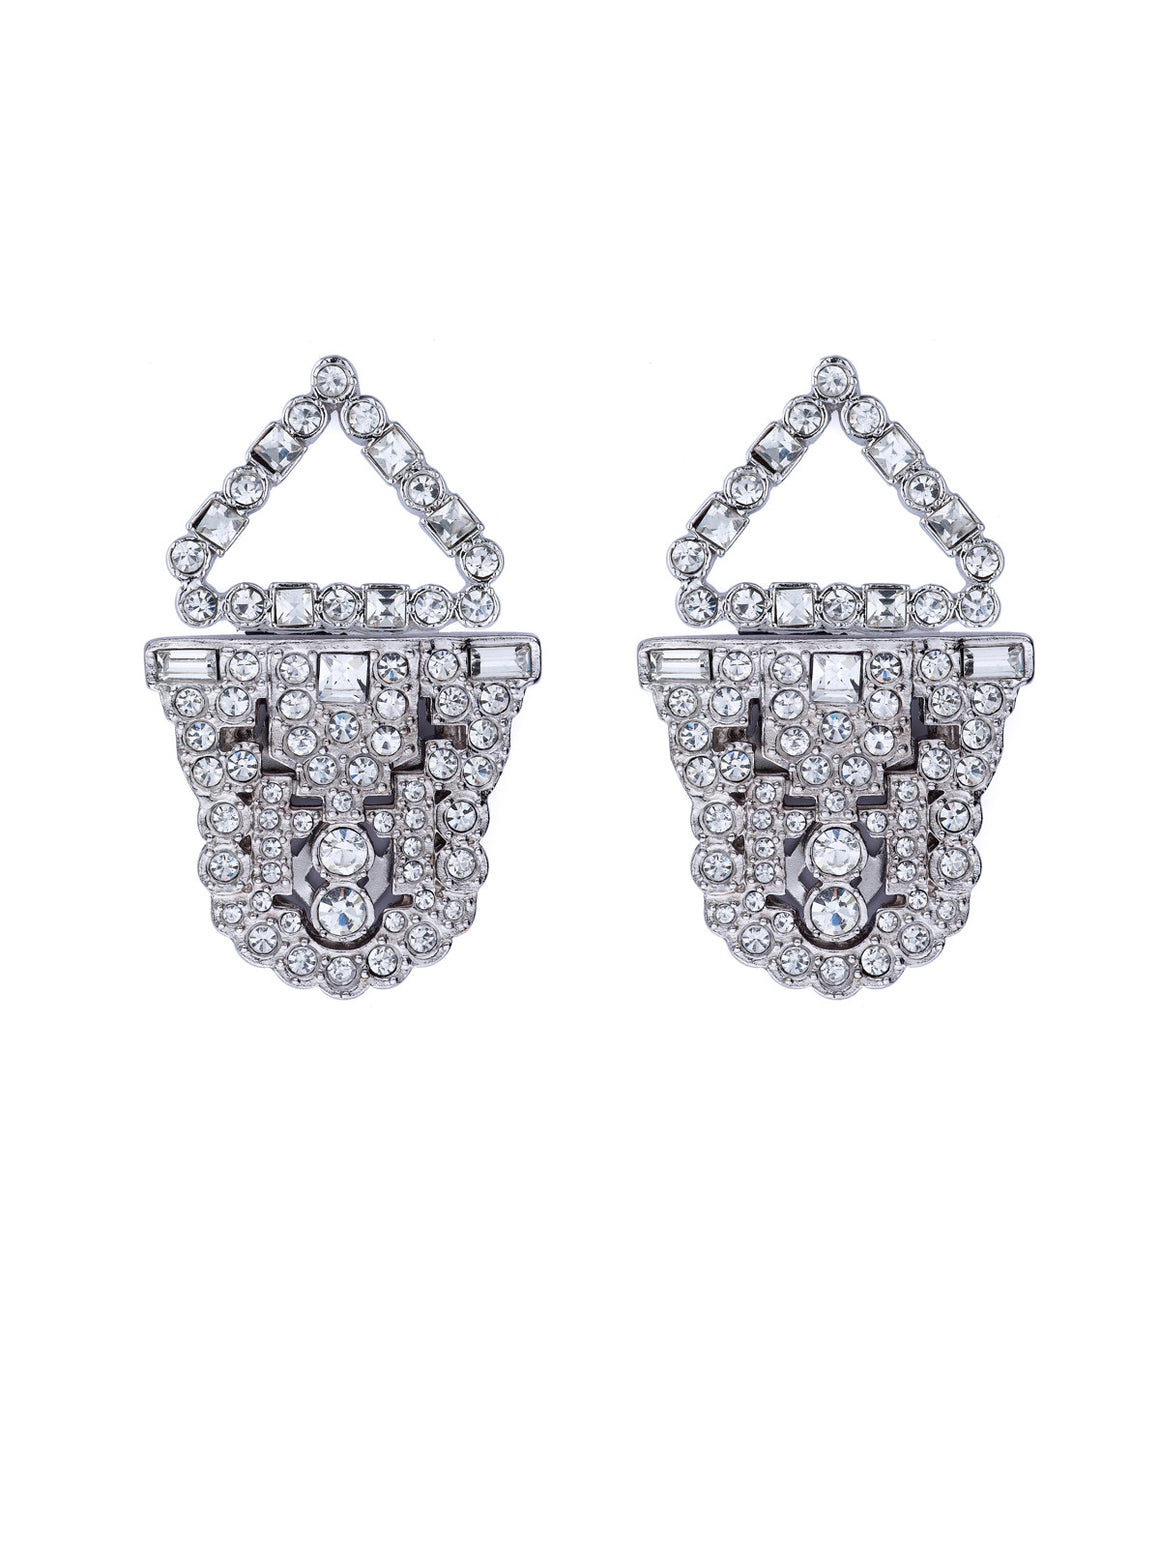 Trixie Sparkle Earrings - Jubilee Jones